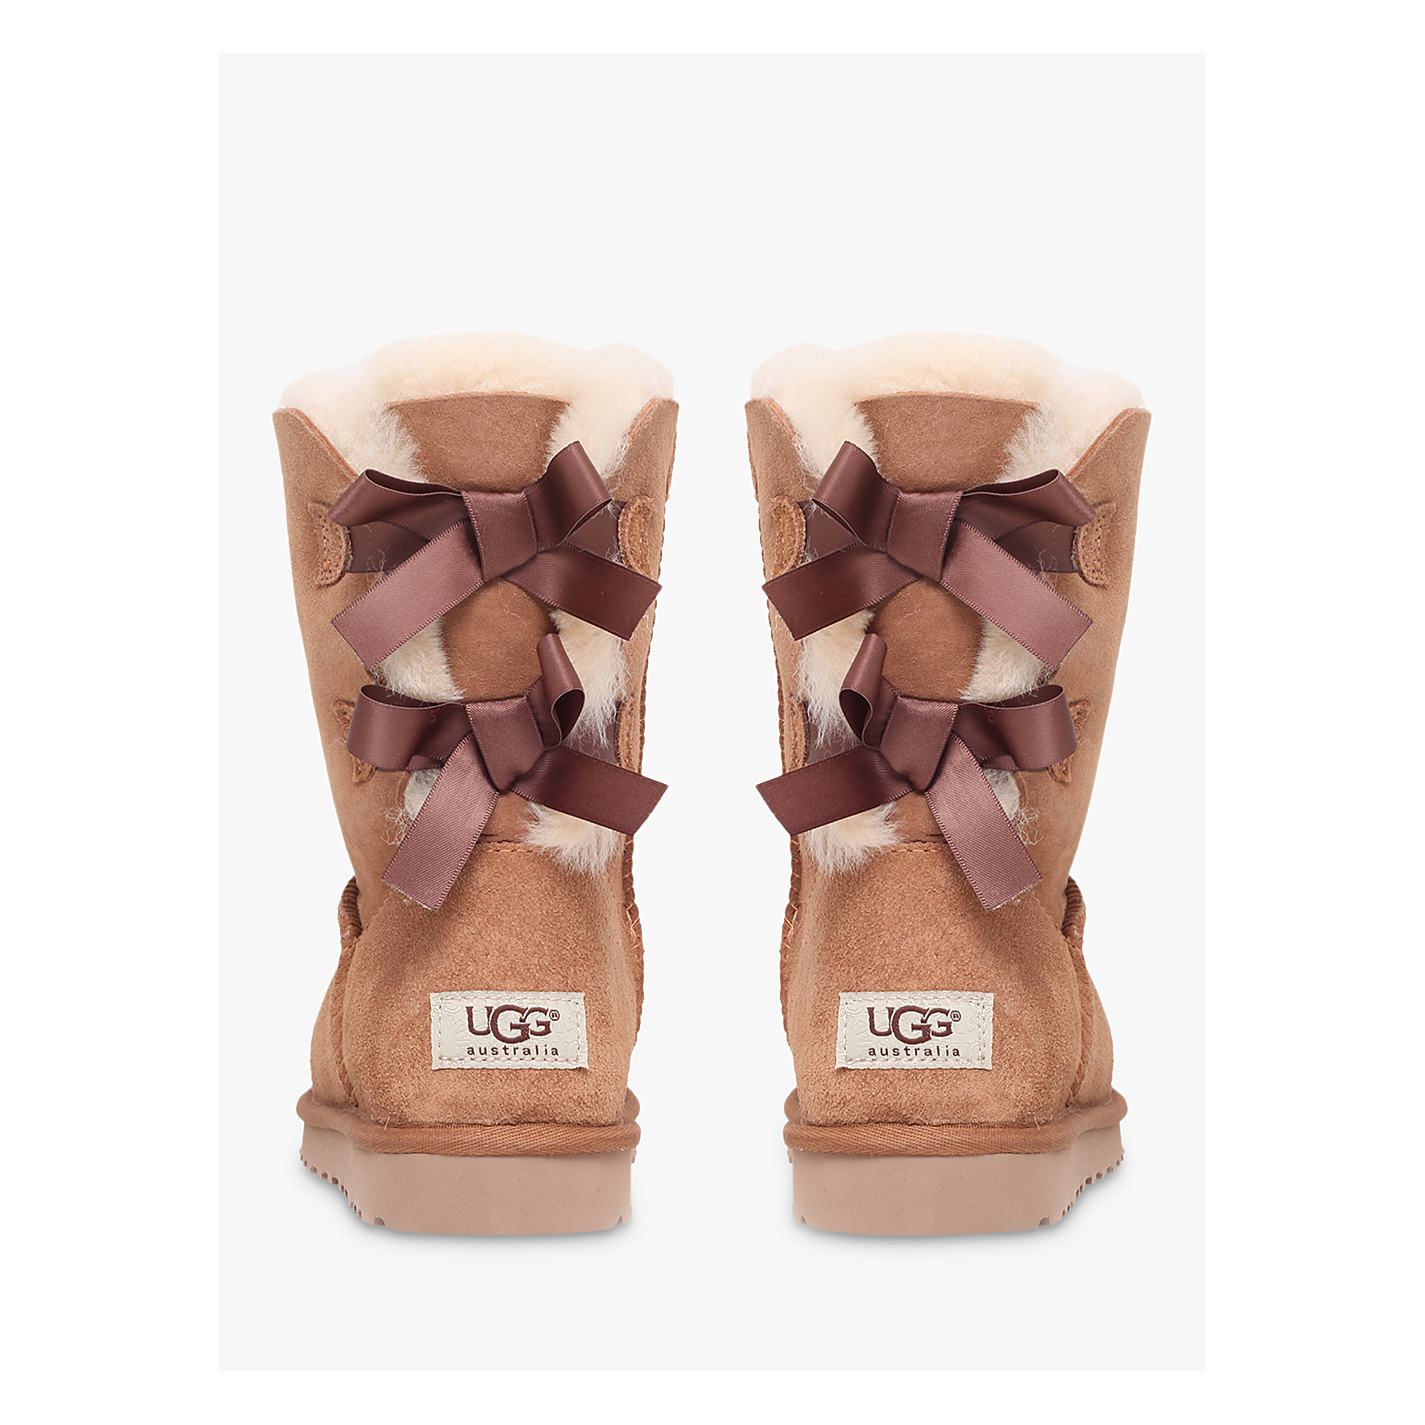 Cheapest Place To Buy Uggs Uk